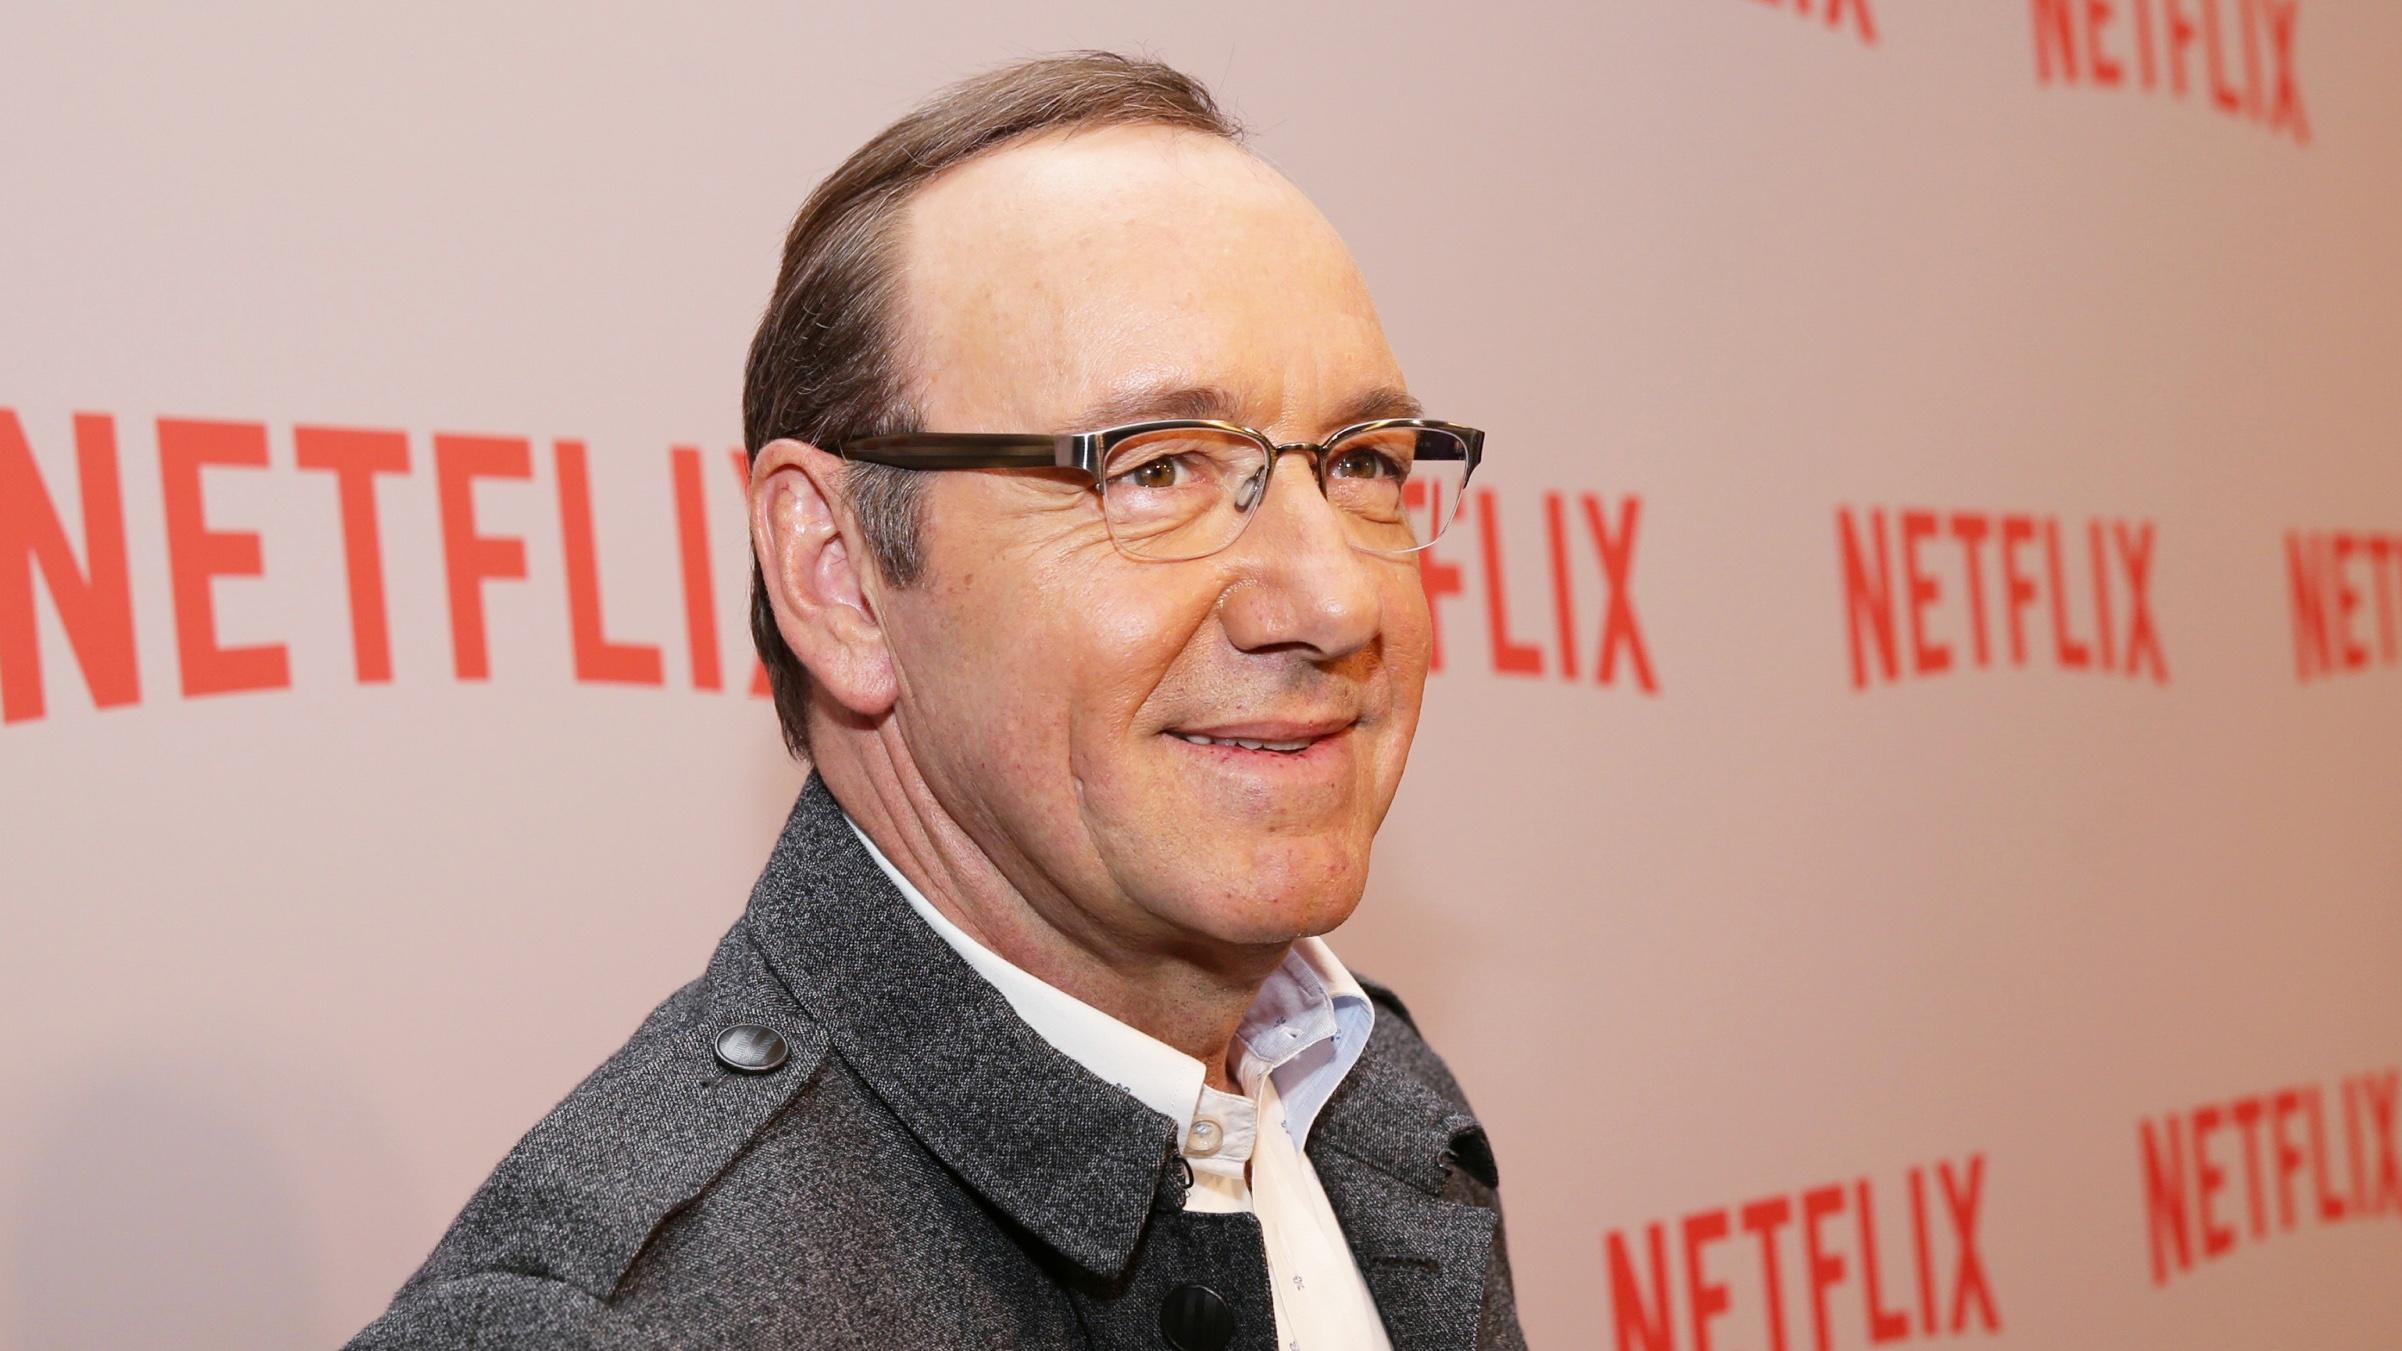 Kevin Spacey Wins Best Actor in a Drama Series at SAG Awards